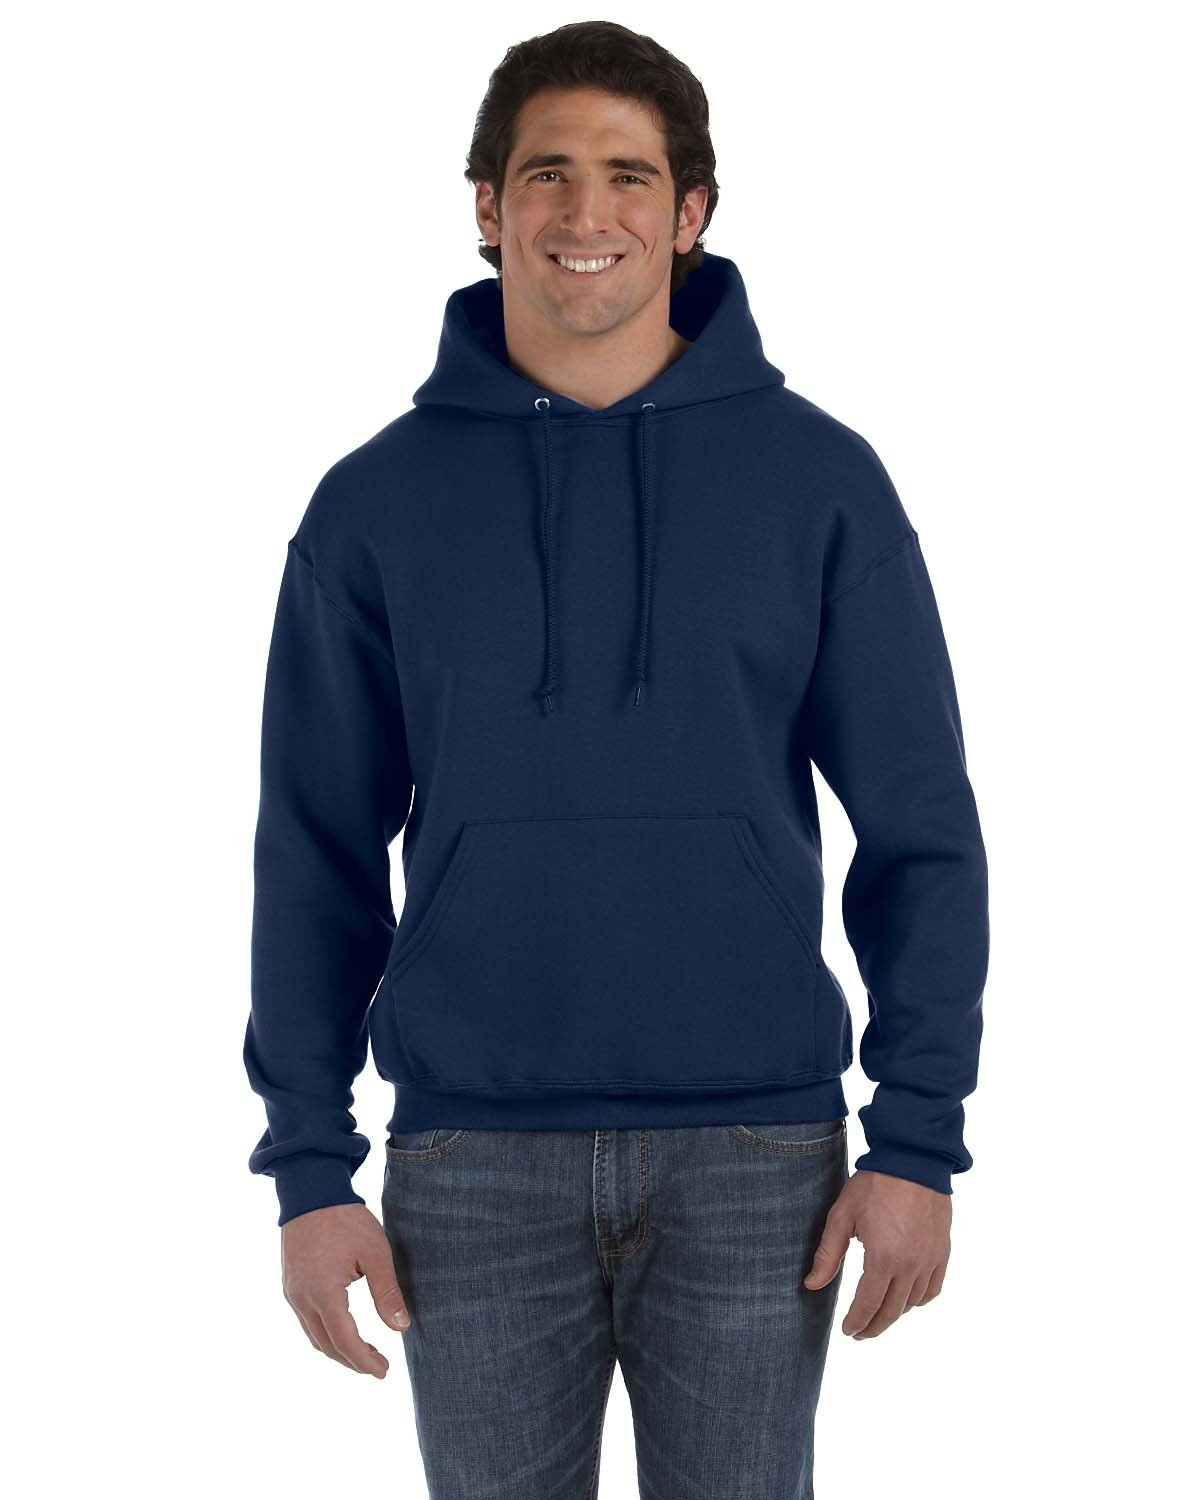 Fruit of the Loom Adult Supercotton™ Pullover Hooded Sweatshirt J NAVY